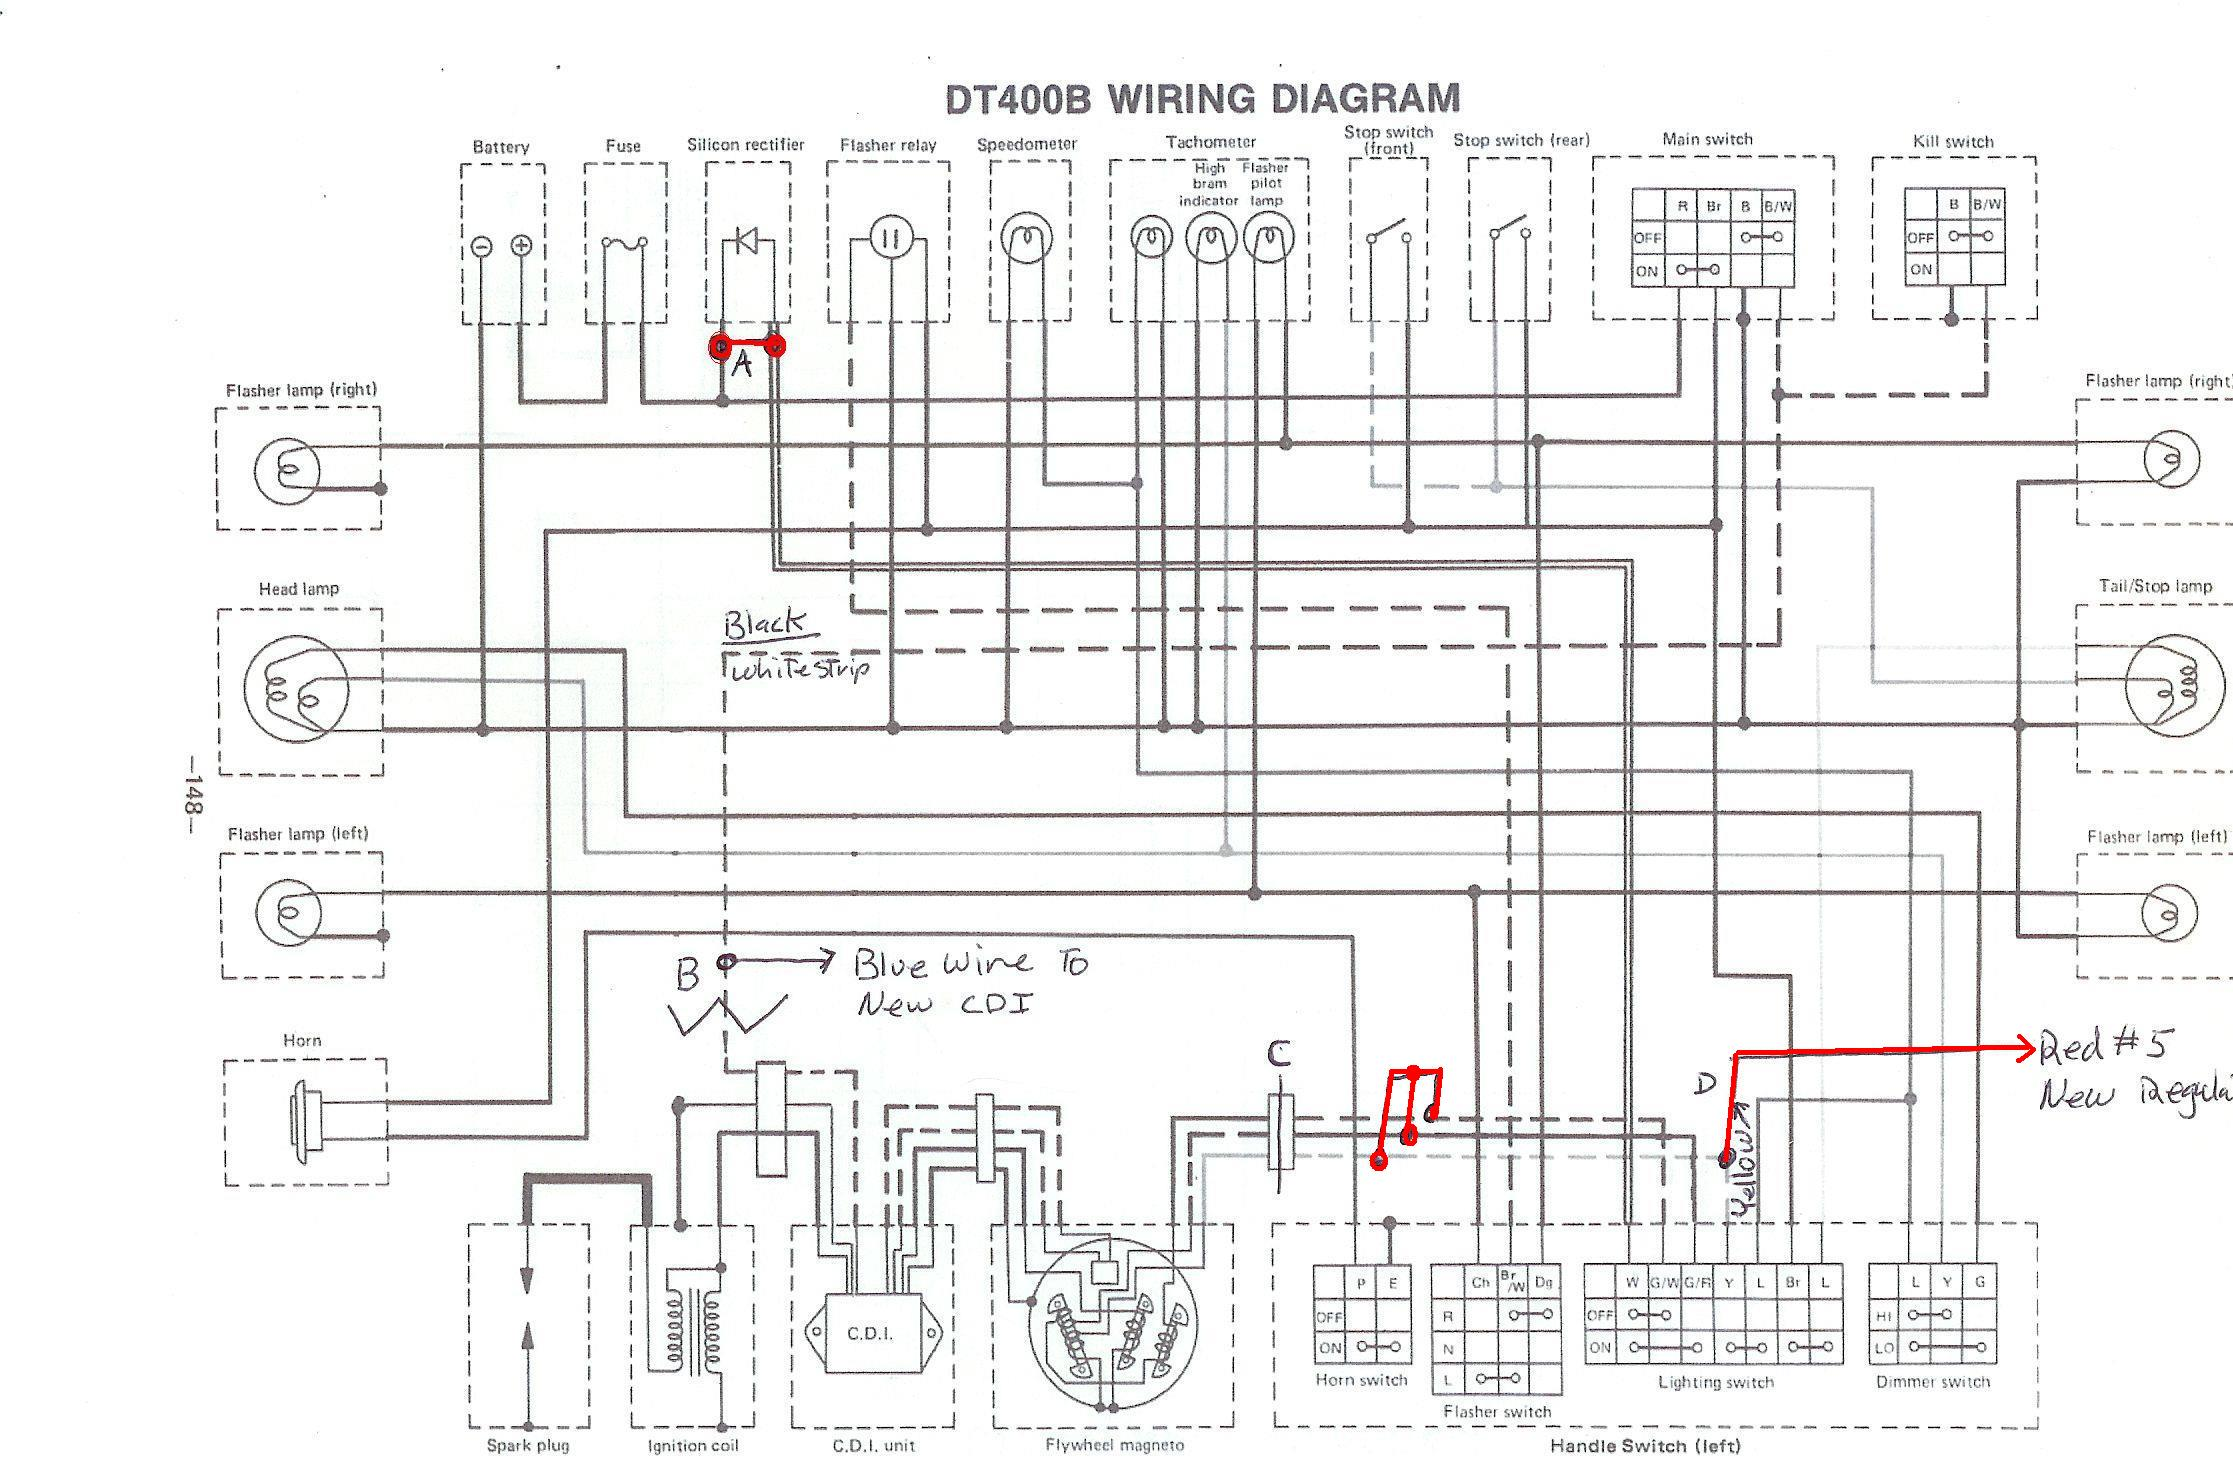 C612DAE Gmc Sierra Bose Stereo Wiring Diagram | ePANEL ... on gm stereo wiring diagram, gmc sierra trailer wiring diagram, gmc sierra wiring schematic,